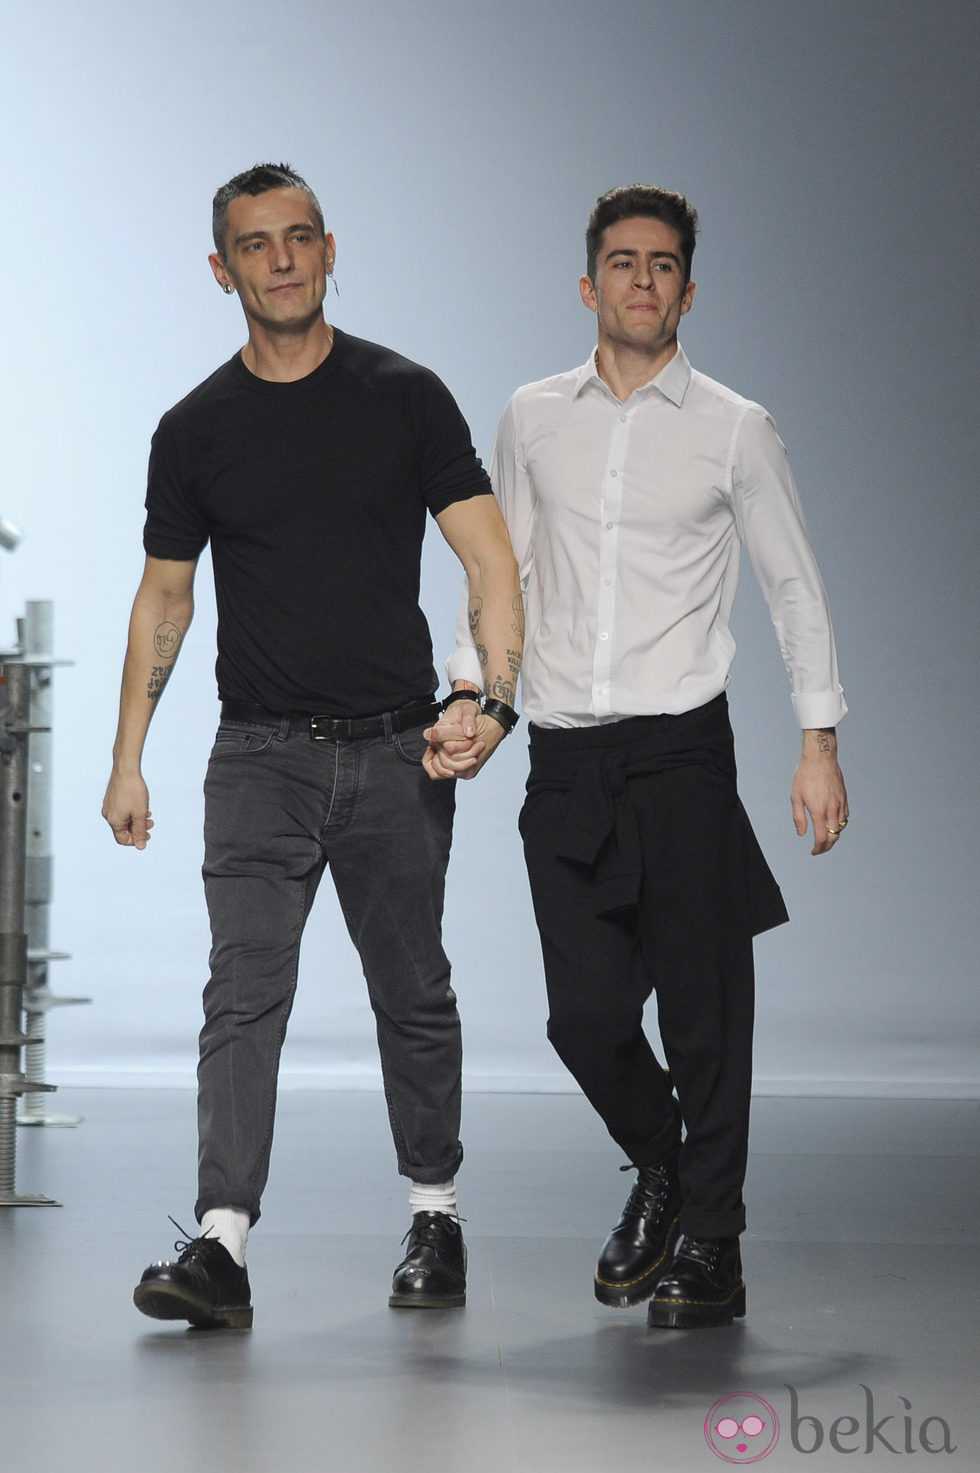 David Delfín y Pelayo Díaz saludando tras su desfile de Madrid Fashion Week 2014